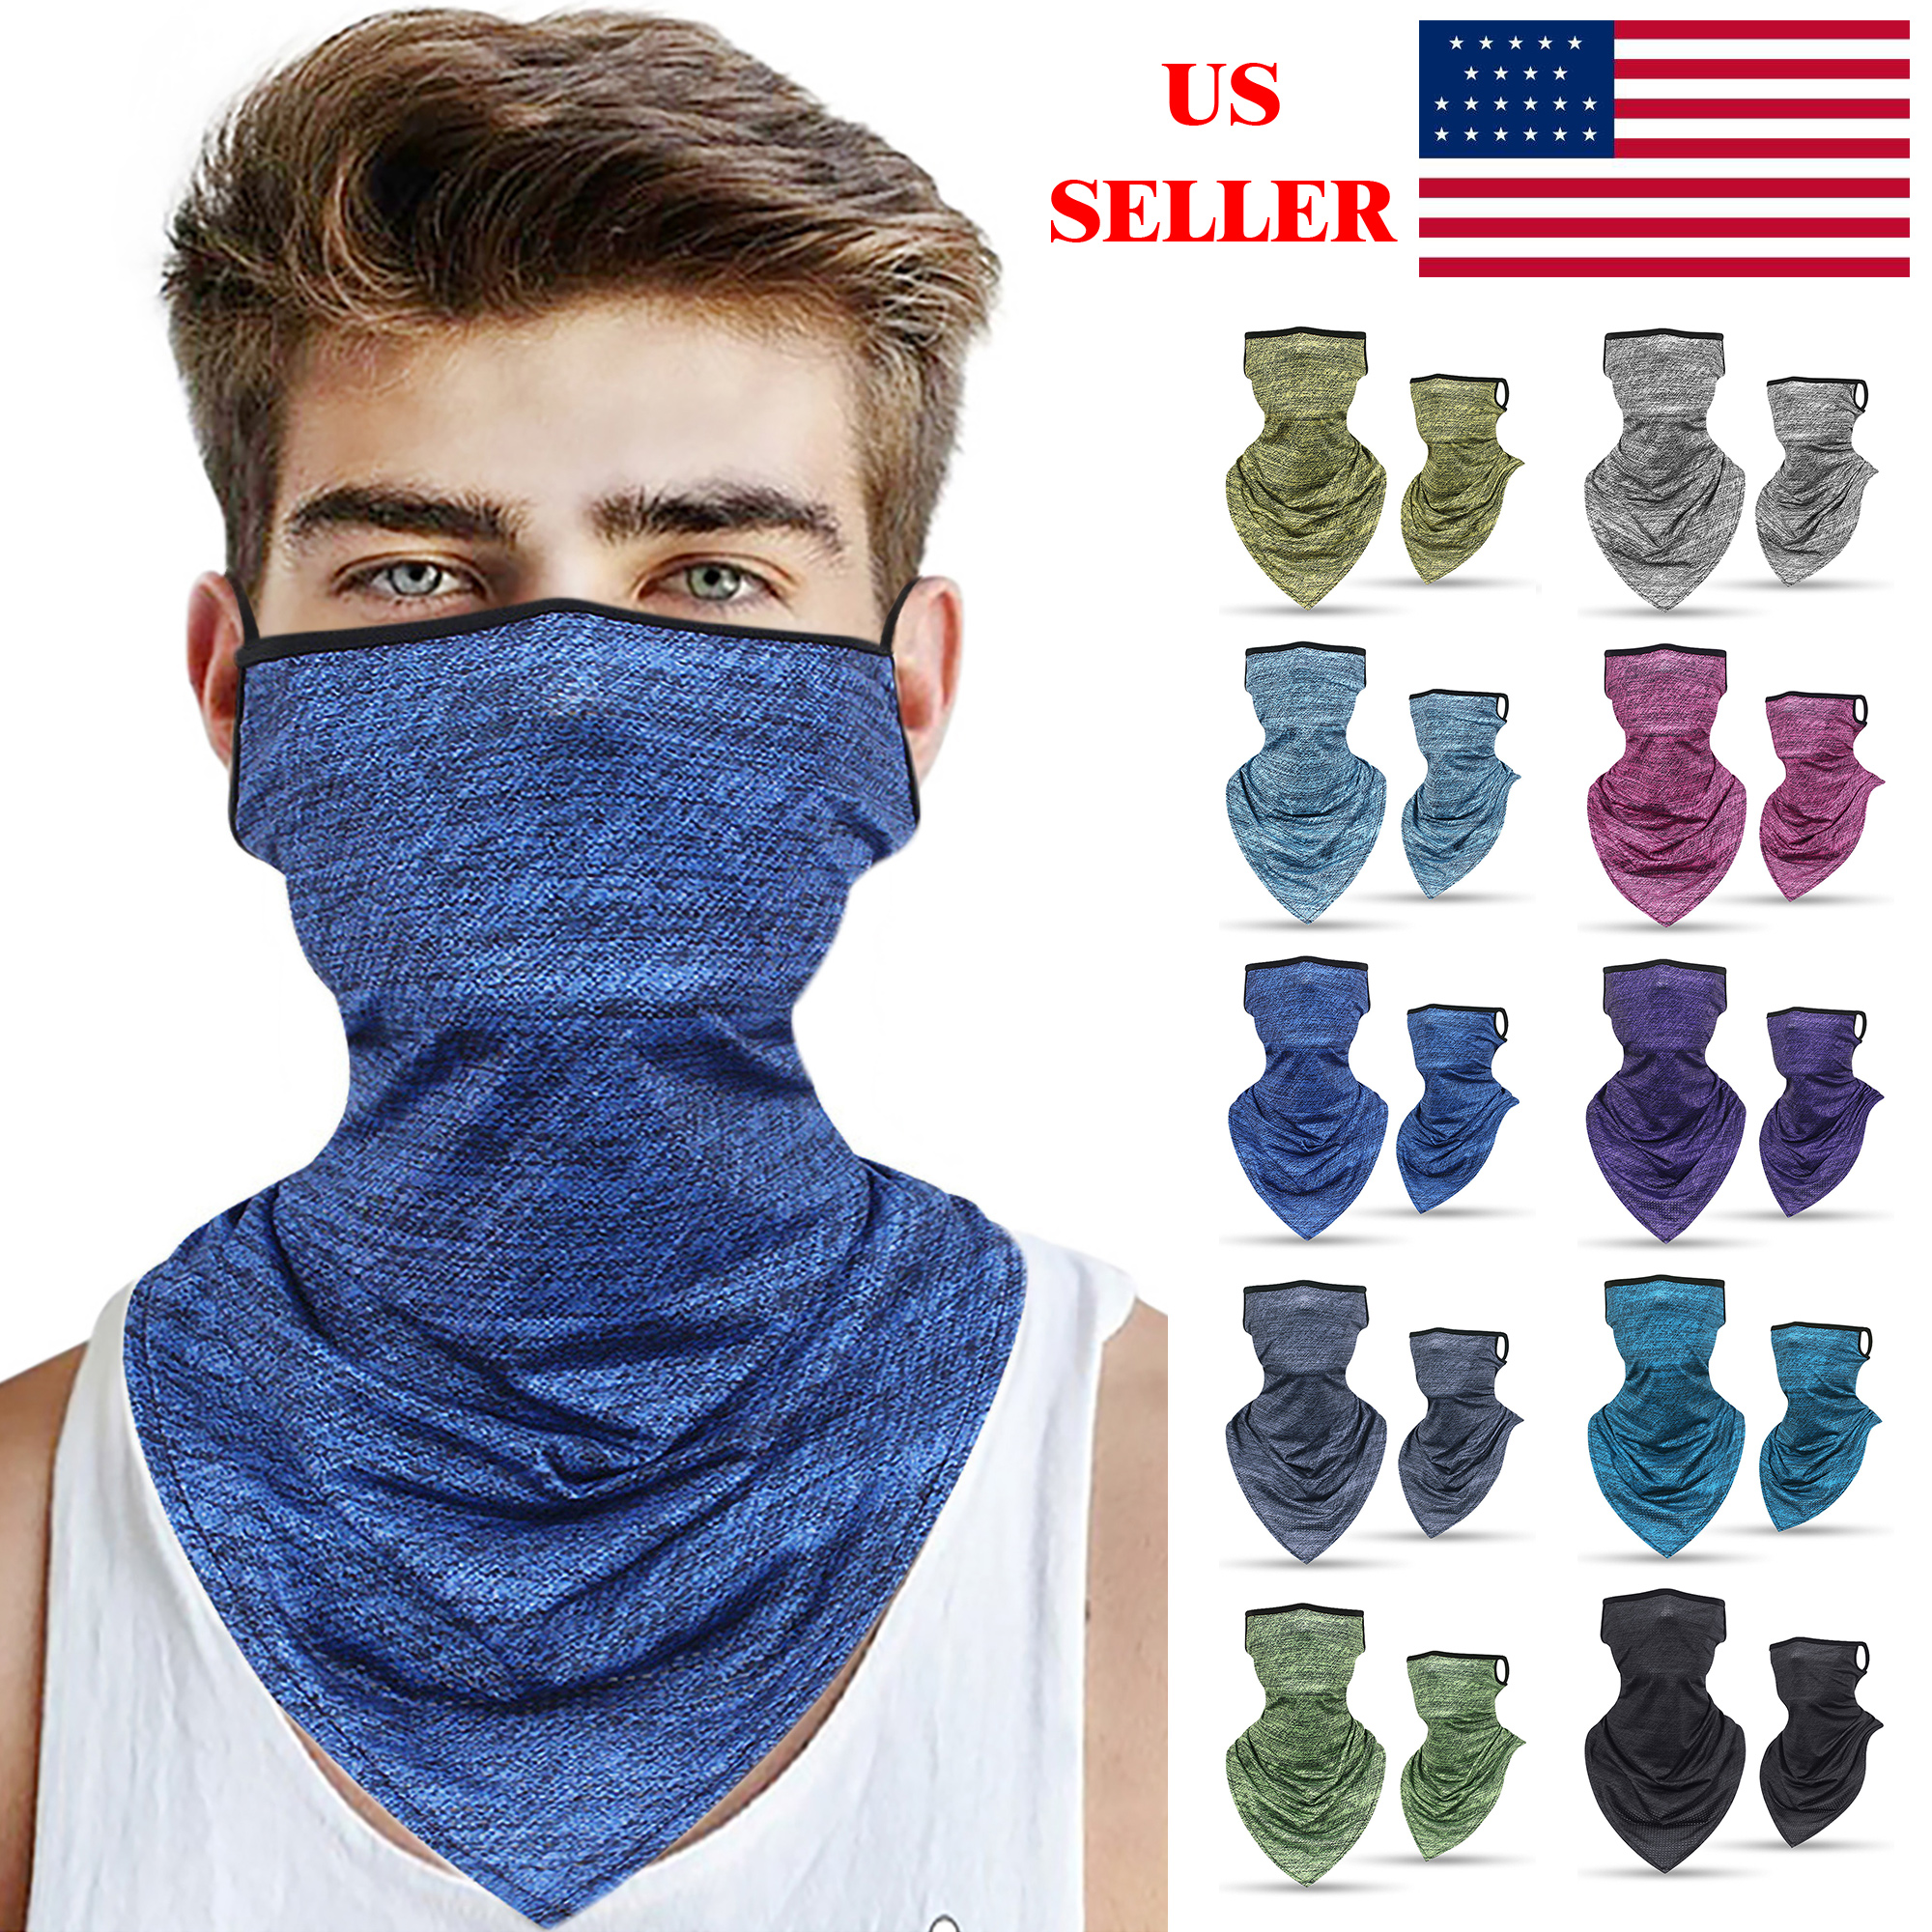 Details about  /Breathable Headband Scarf Head Face Neck Gaiter Face Balaclava Scarf US ST0CK